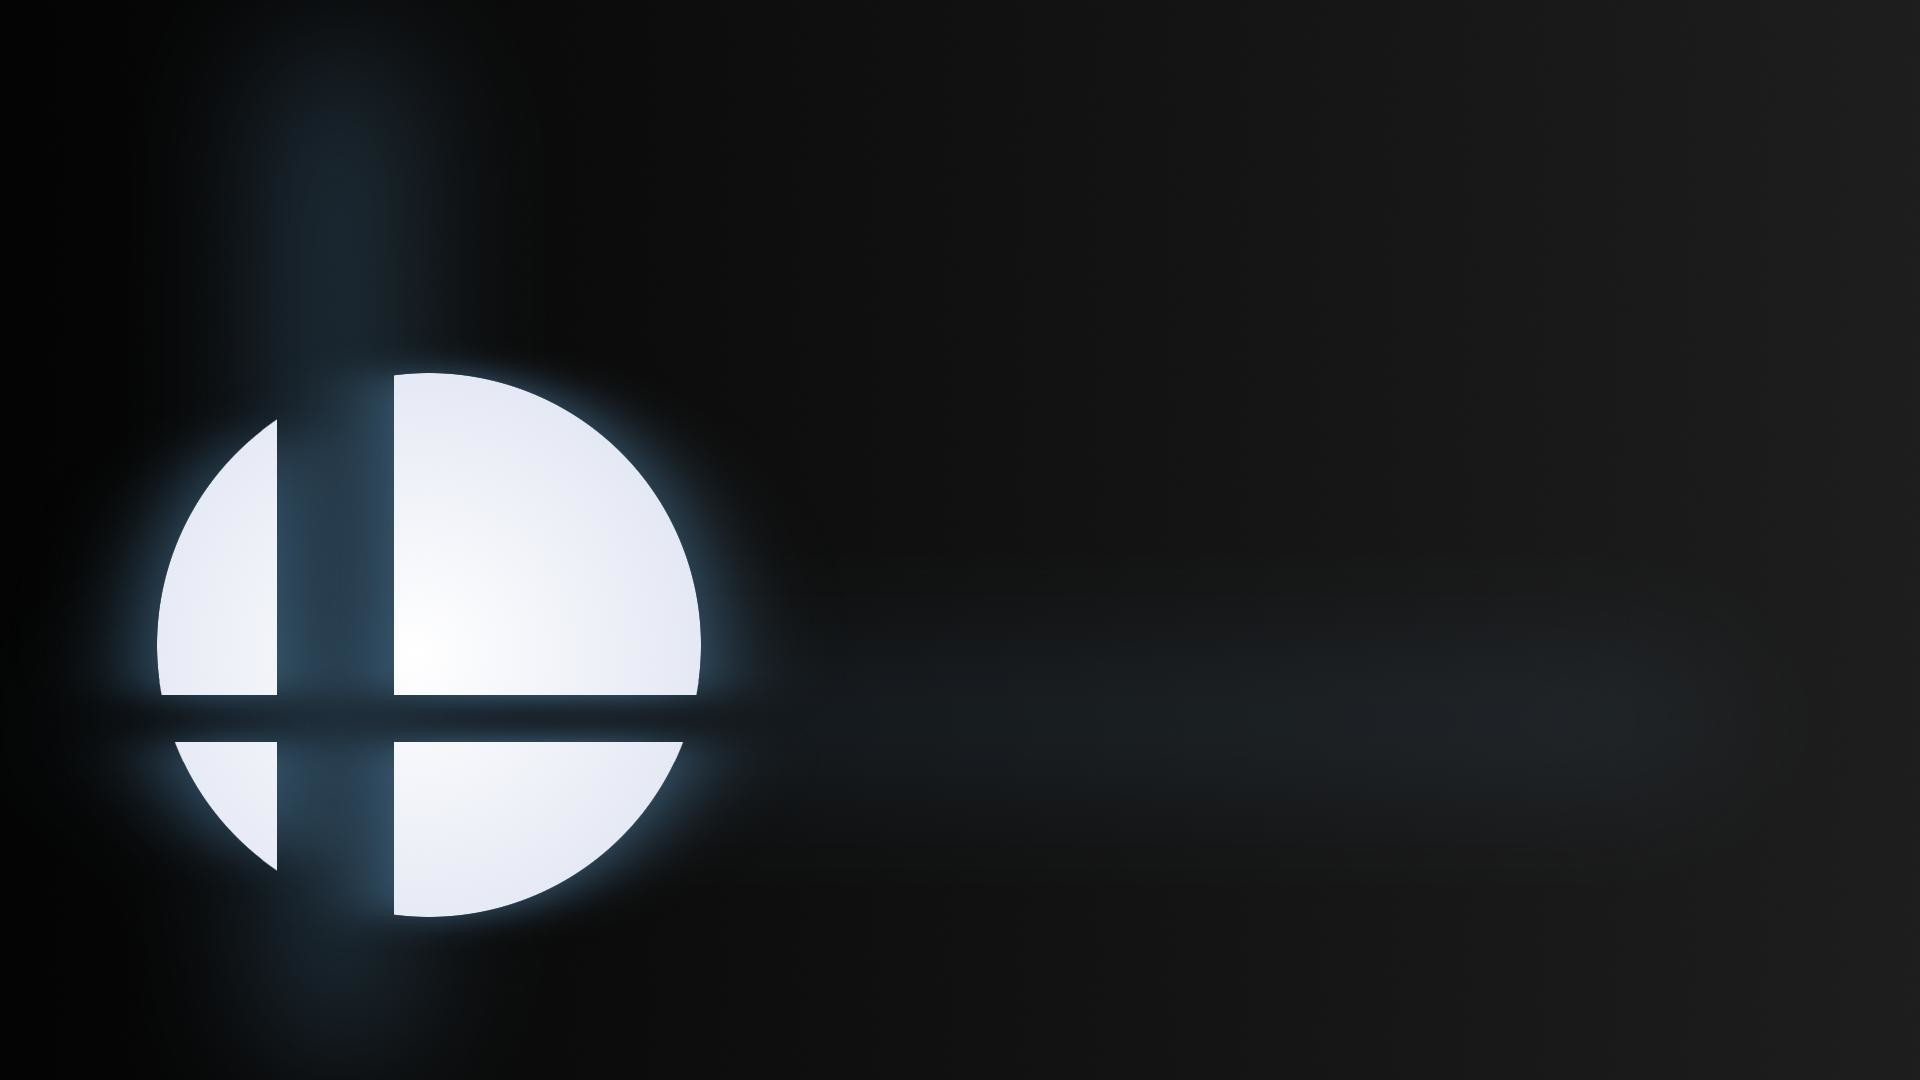 Clean and simple (1080p)